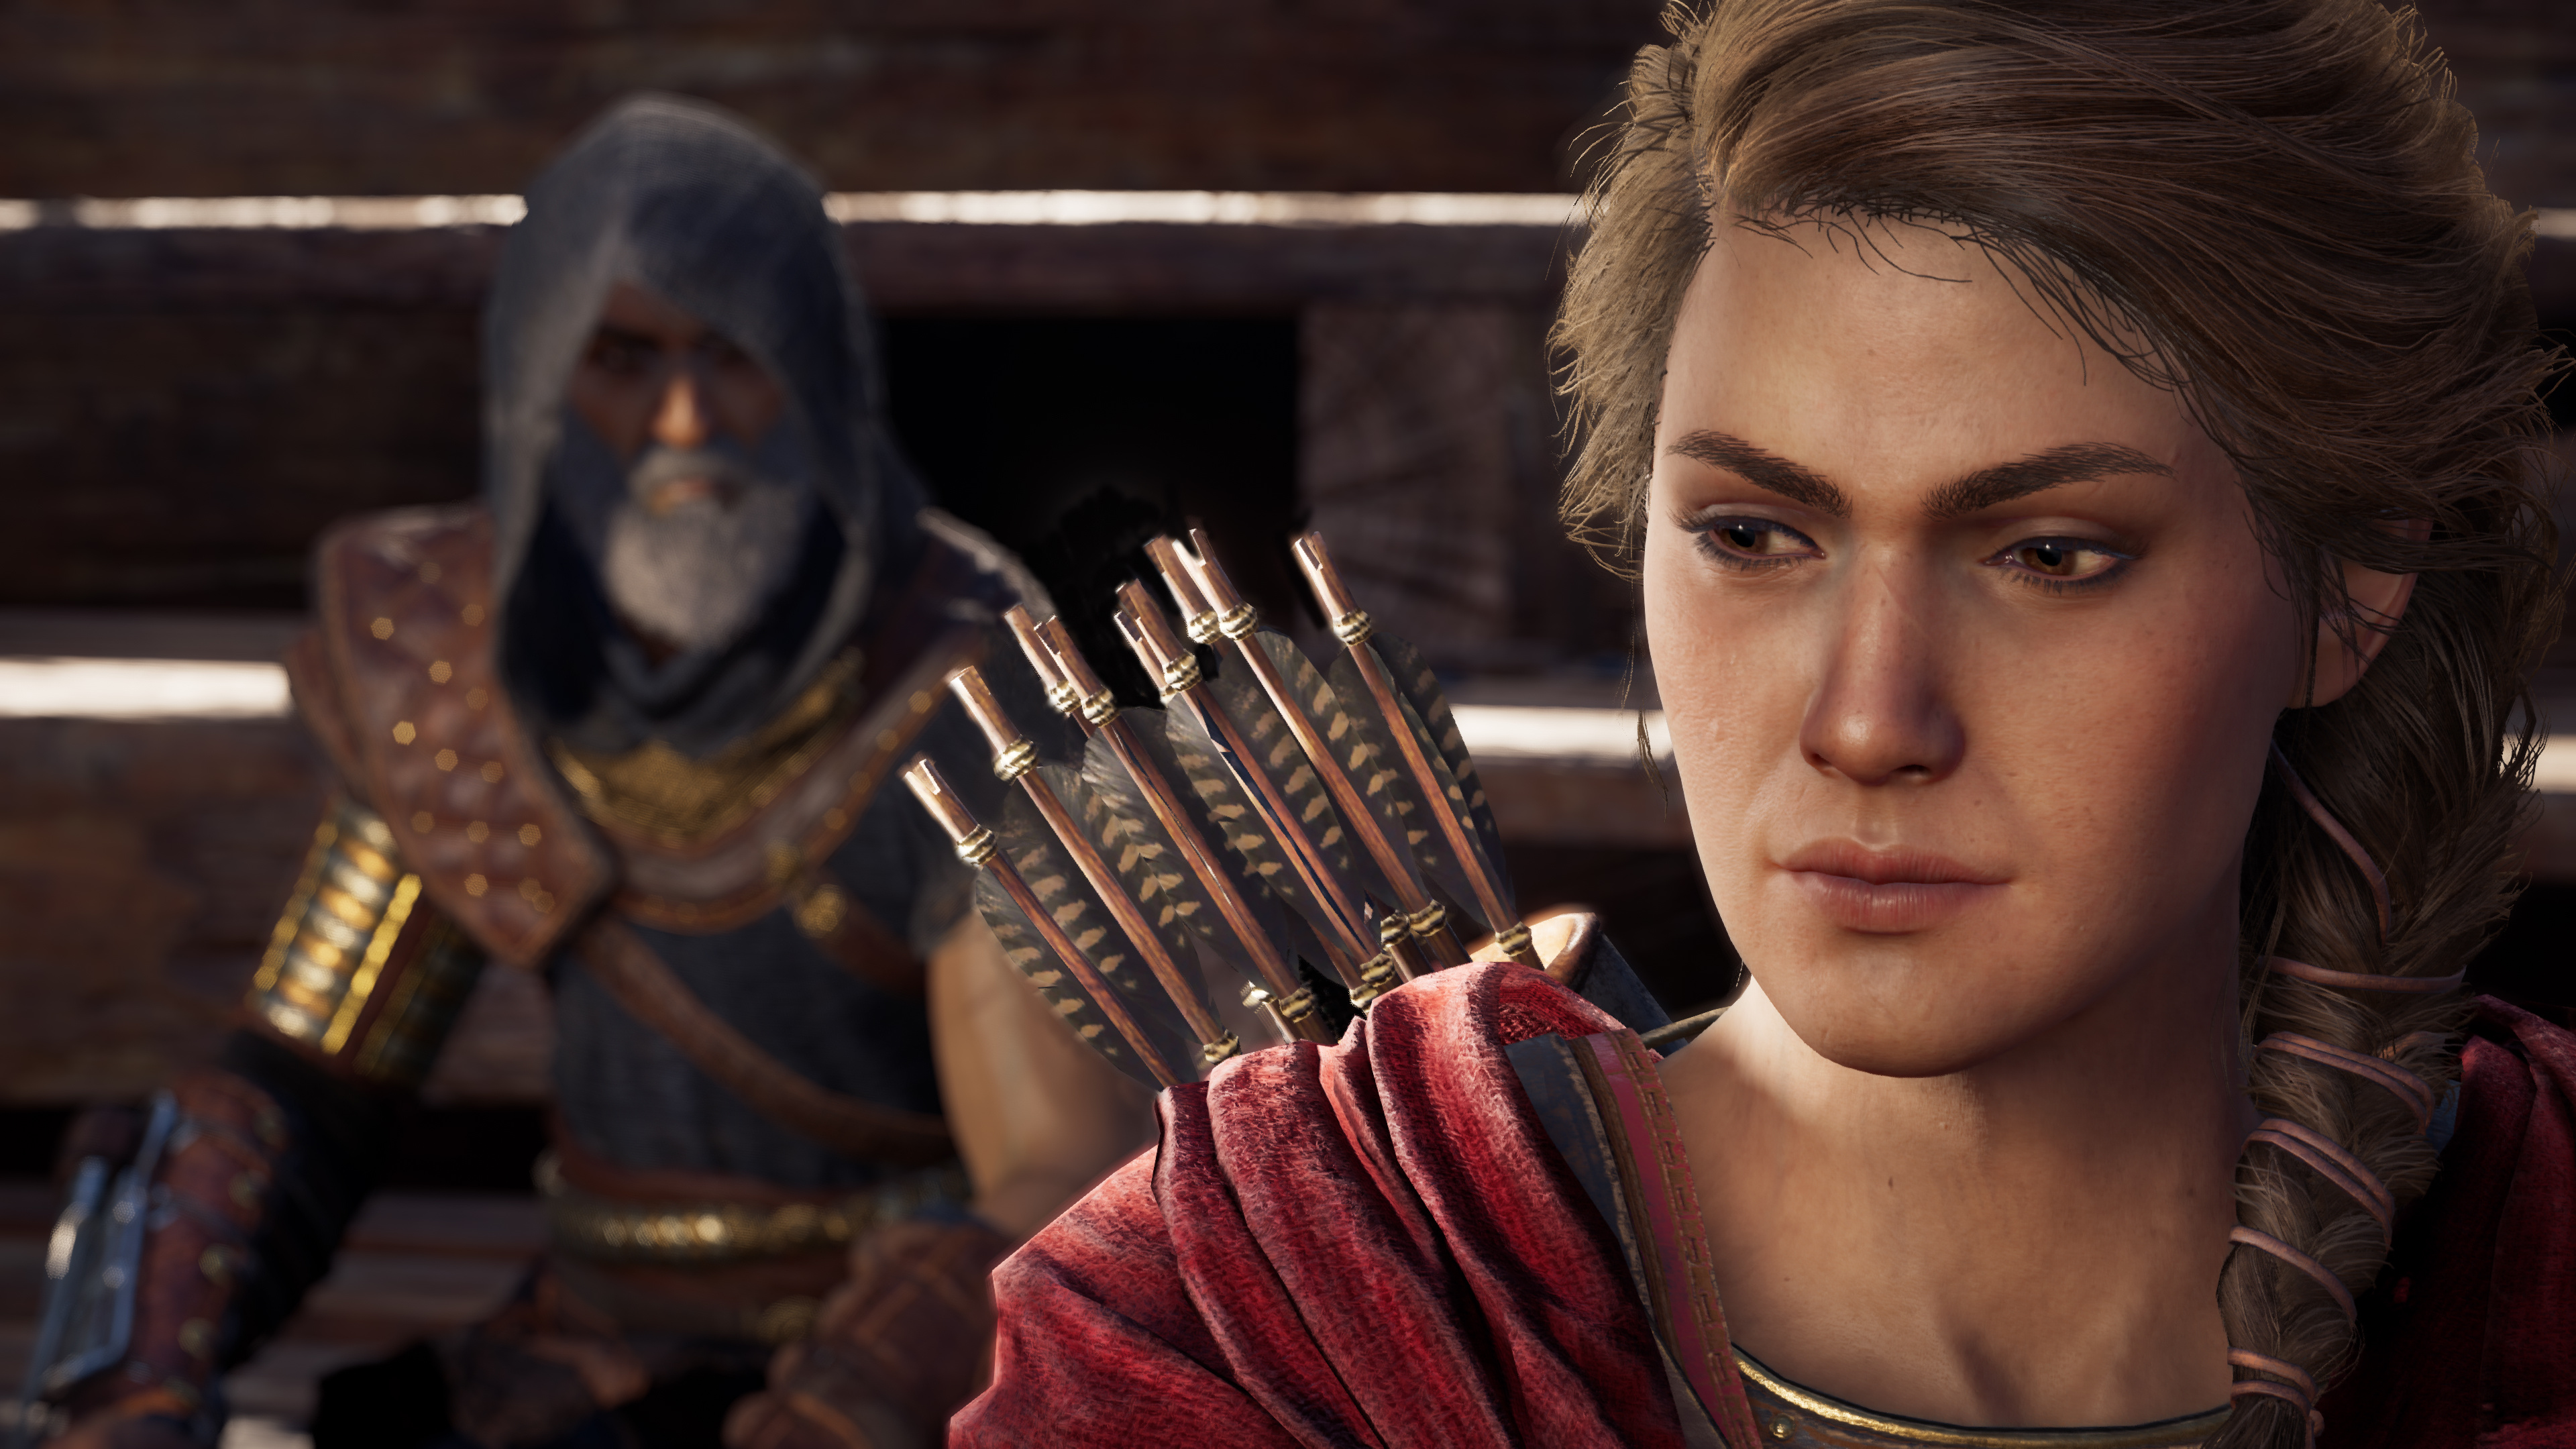 Assassin's Creed Odyssey Receives Two New 'Lost Tales of Greece' Stories